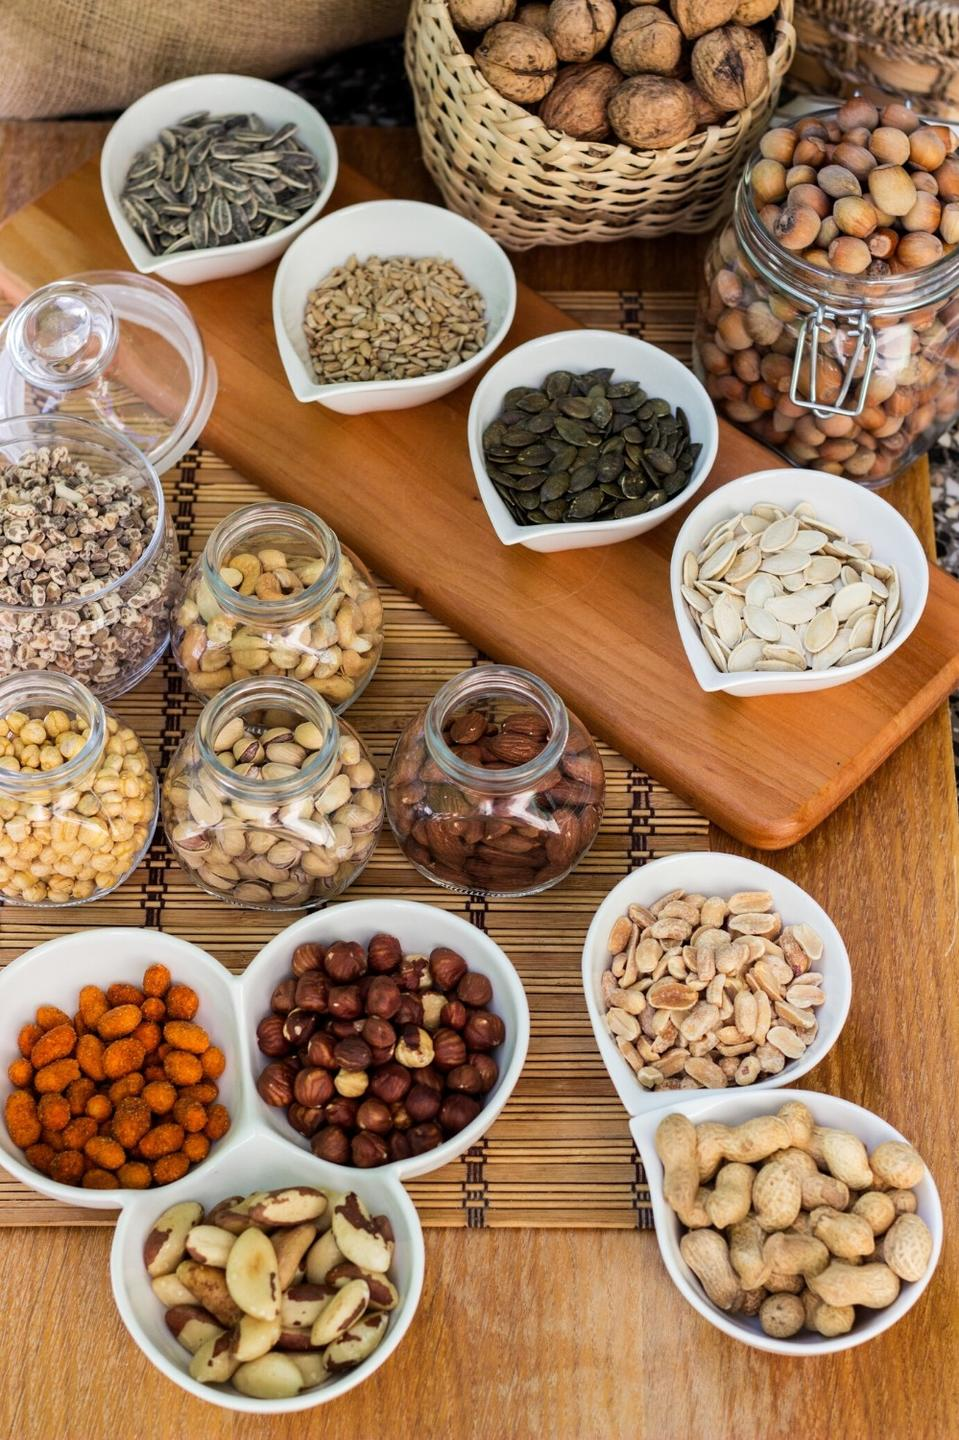 omega 3 sources, bowls of sunflower seeds, pumpkin seeds, hazelnuts, walnuts, pistachios, almonds and peanuts